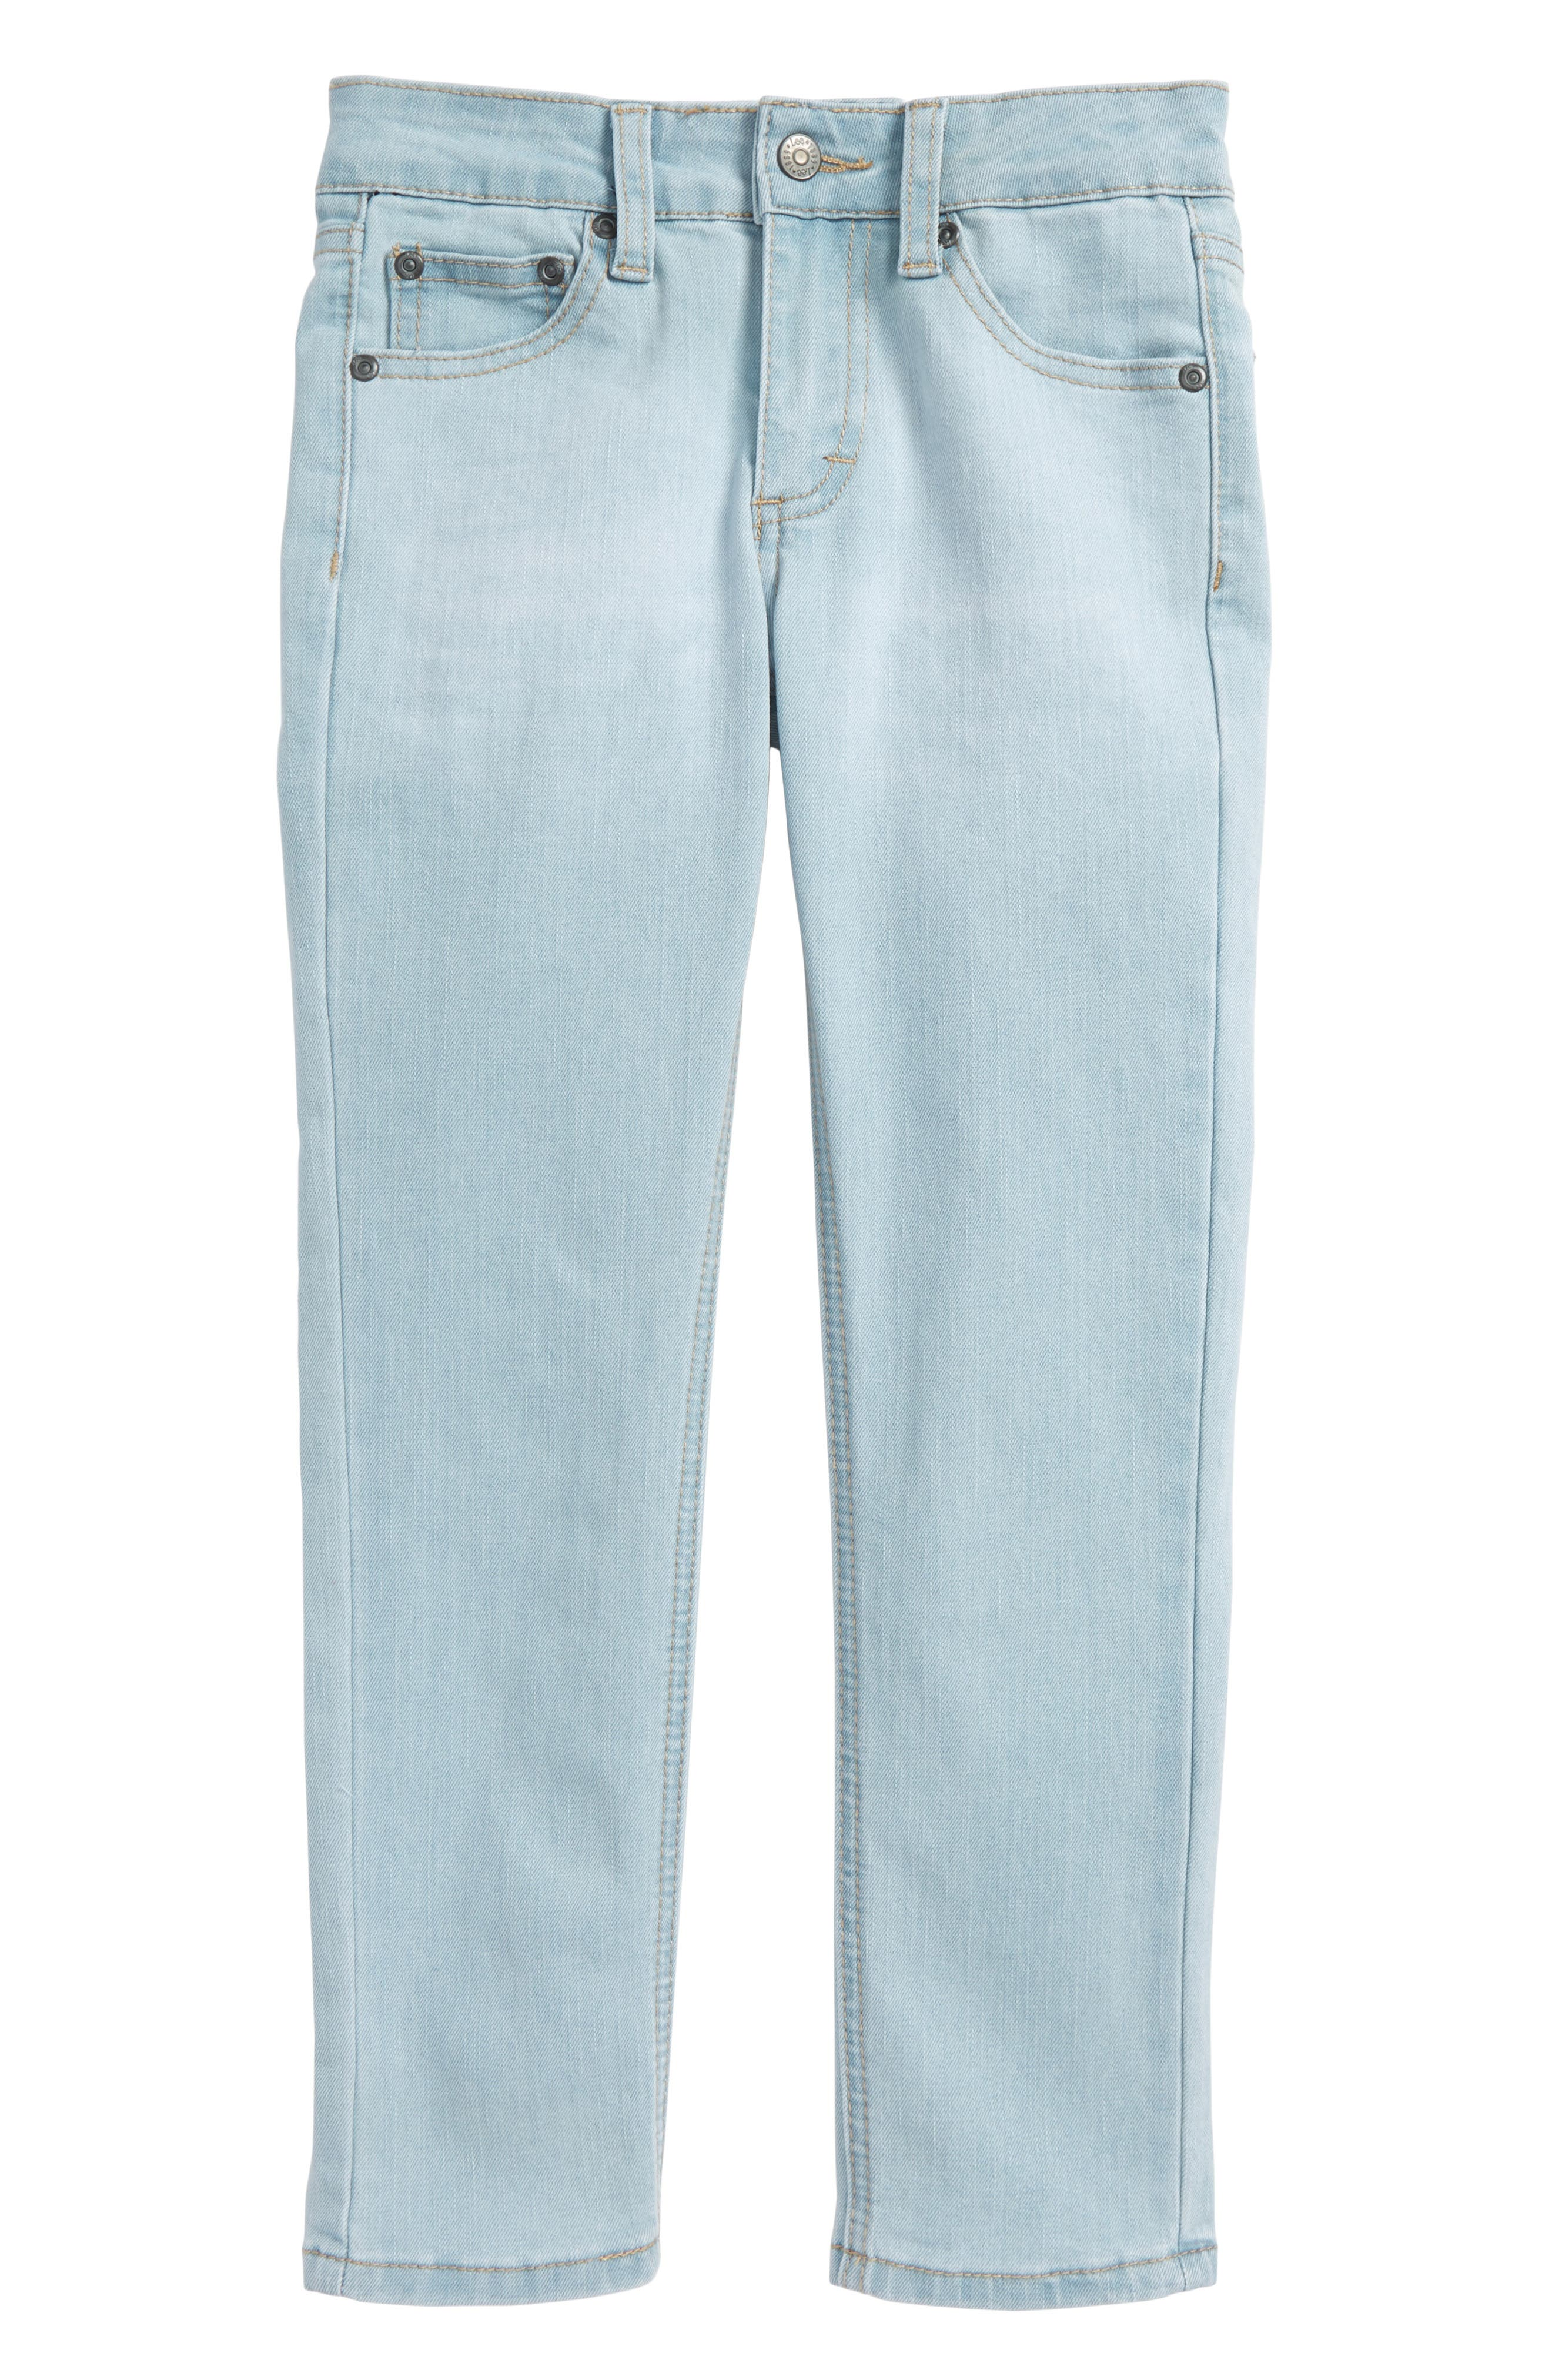 Skinny Fit Jeans,                         Main,                         color, Waterfall